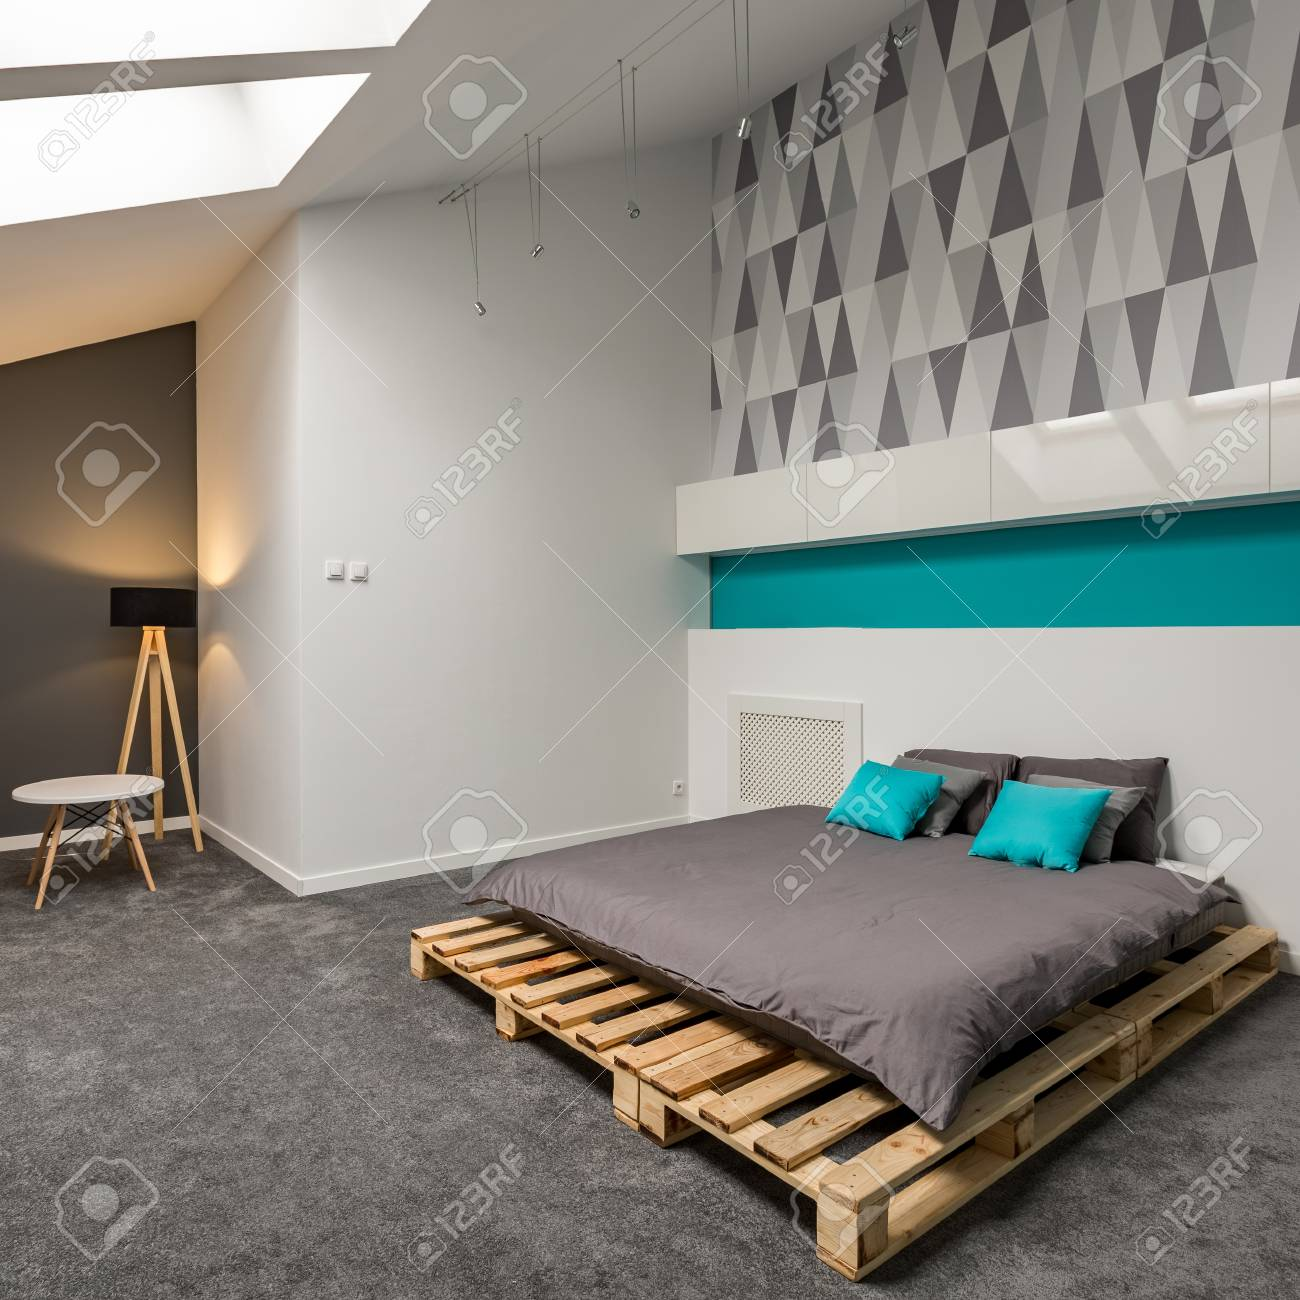 Grey And White Bedroom With Simple Pallet Bed And Patterned Wallpaper Stock Photo Picture And Royalty Free Image Image 108036591